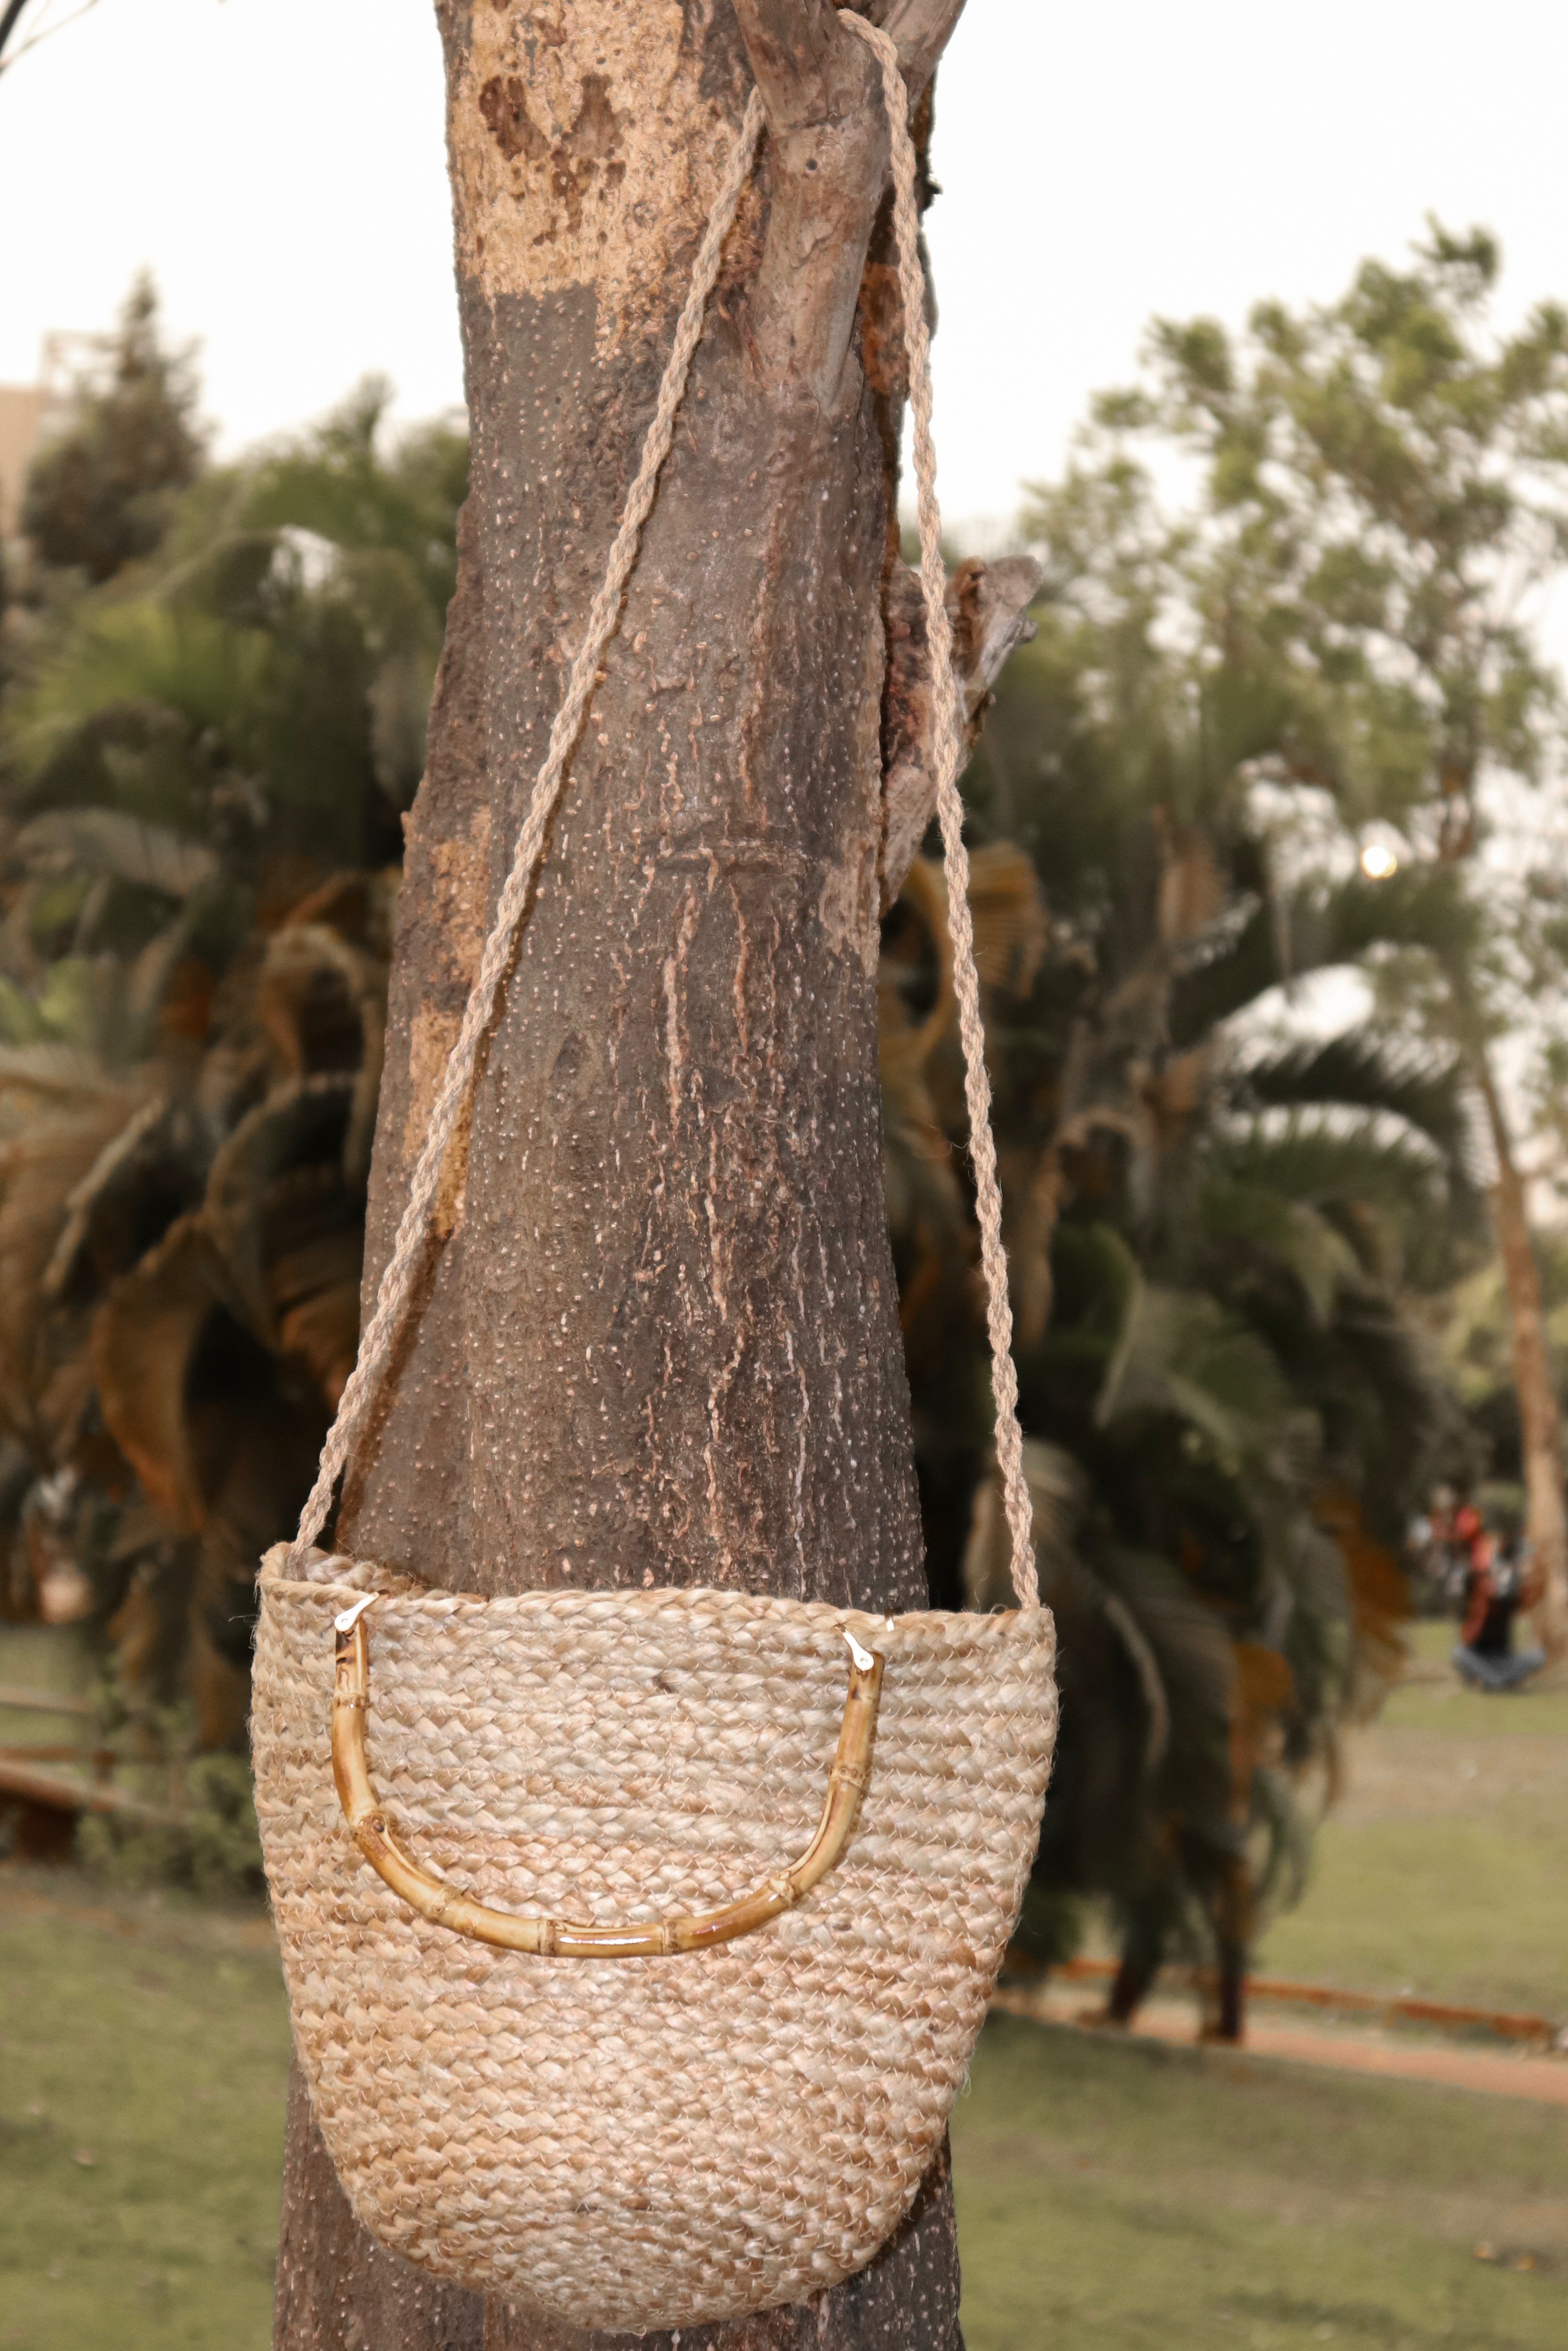 ONE STEP TOWARDS SUSTAINABILITY WITH THE JUTE BAGS - 11